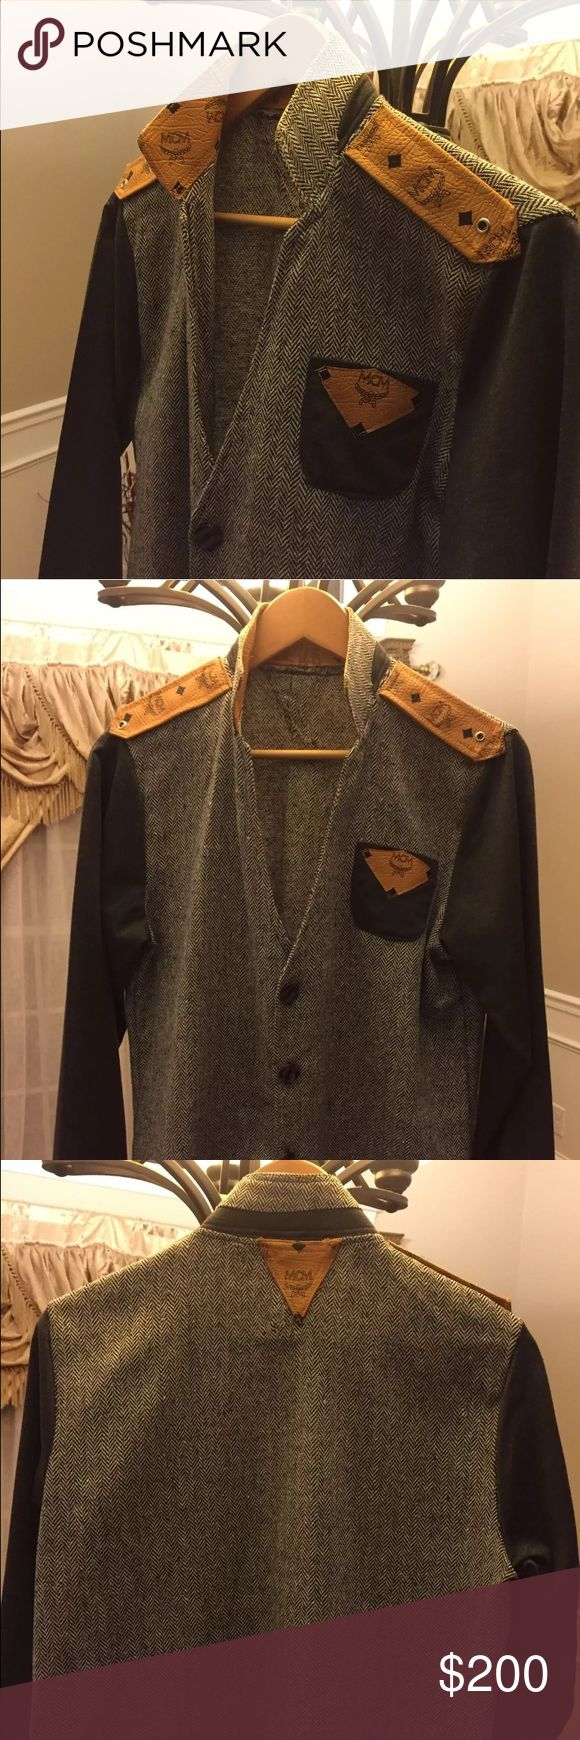 MCM This stunning tweed Jacket was customized by my tailor with MCM coated material.  As seen in pictures the collar is reversible so it can be worn up or down.  The size is equivalent to a US large. MCM Jackets & Coats Pea Coats